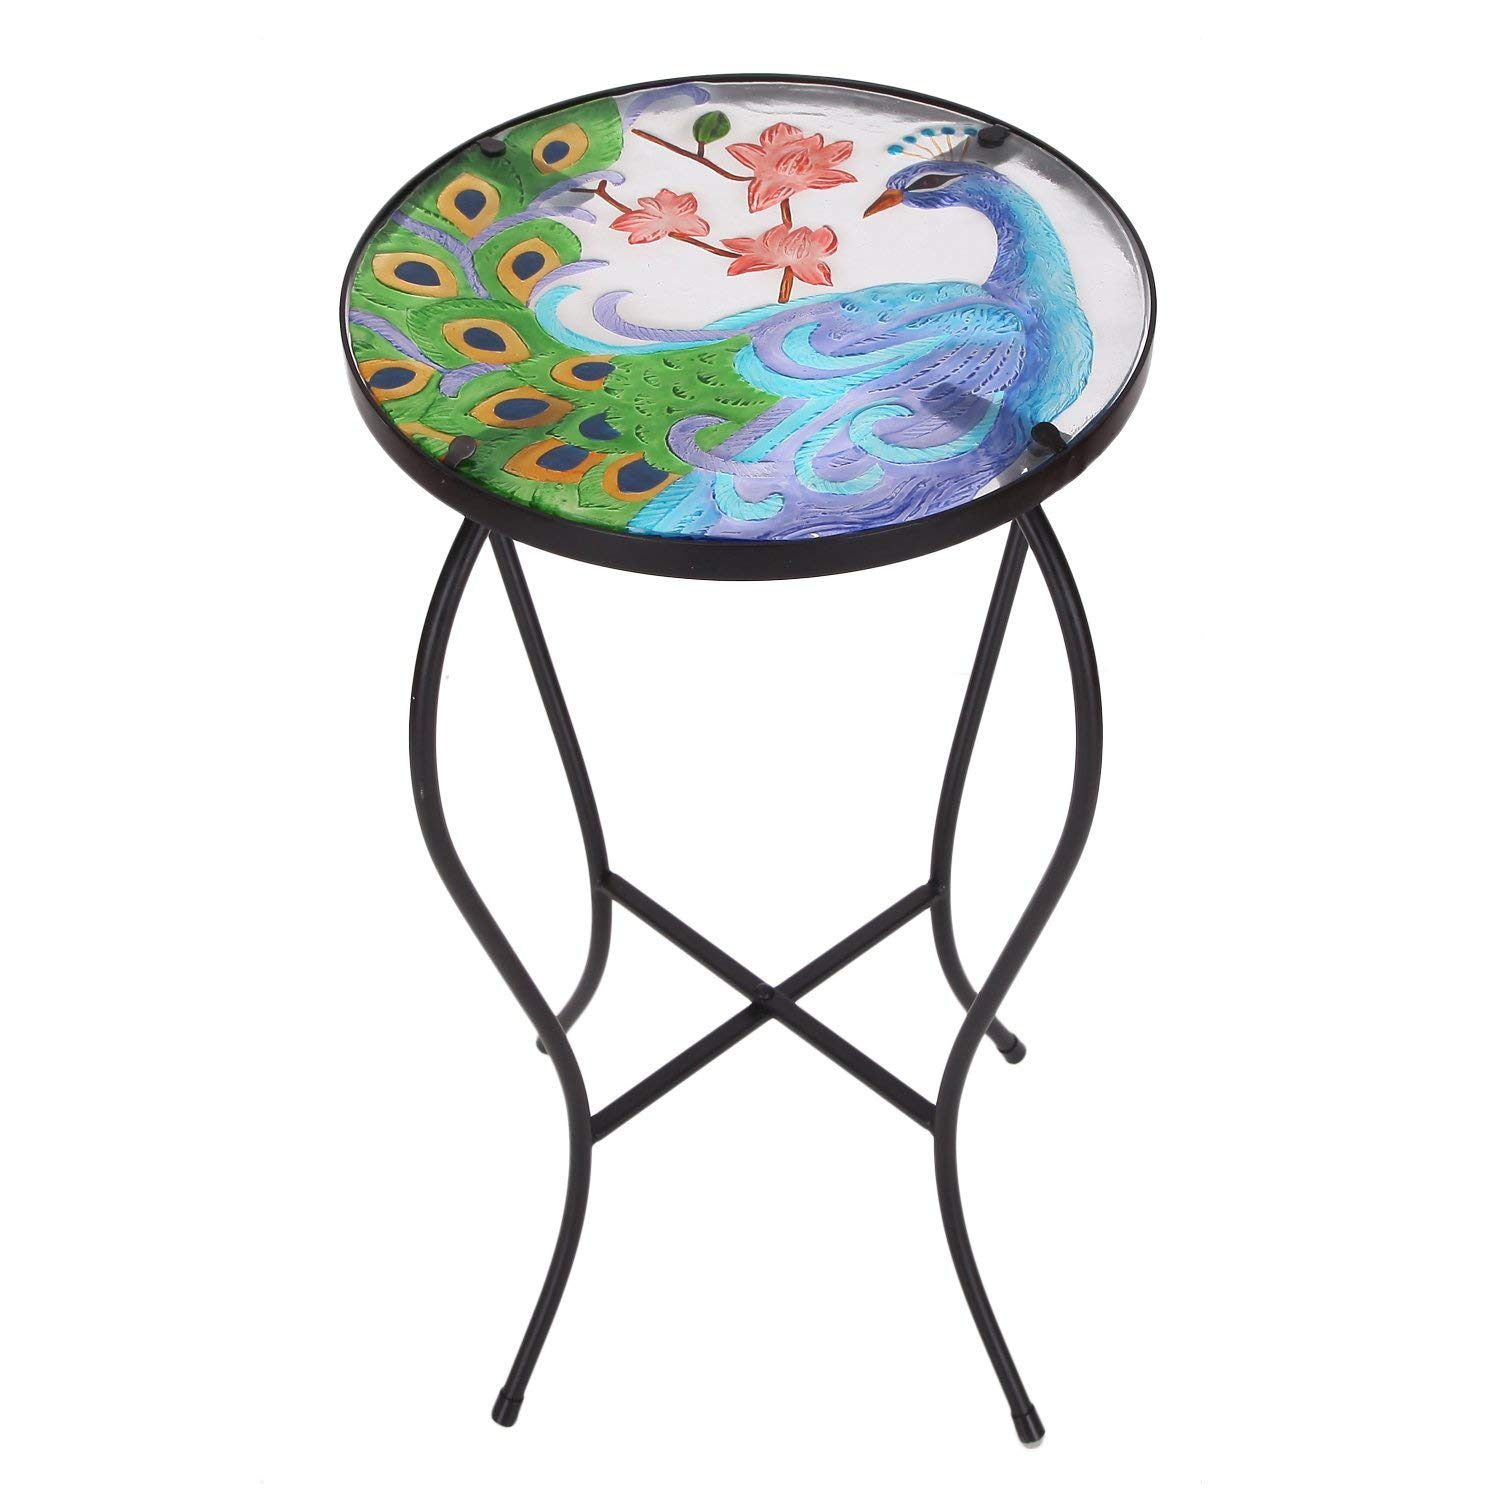 peacock mosaic find line accent table indoor get quotations homebeez flower foldable round plant stand side black color curve iron wall clock wire basket with leaf white porcelain